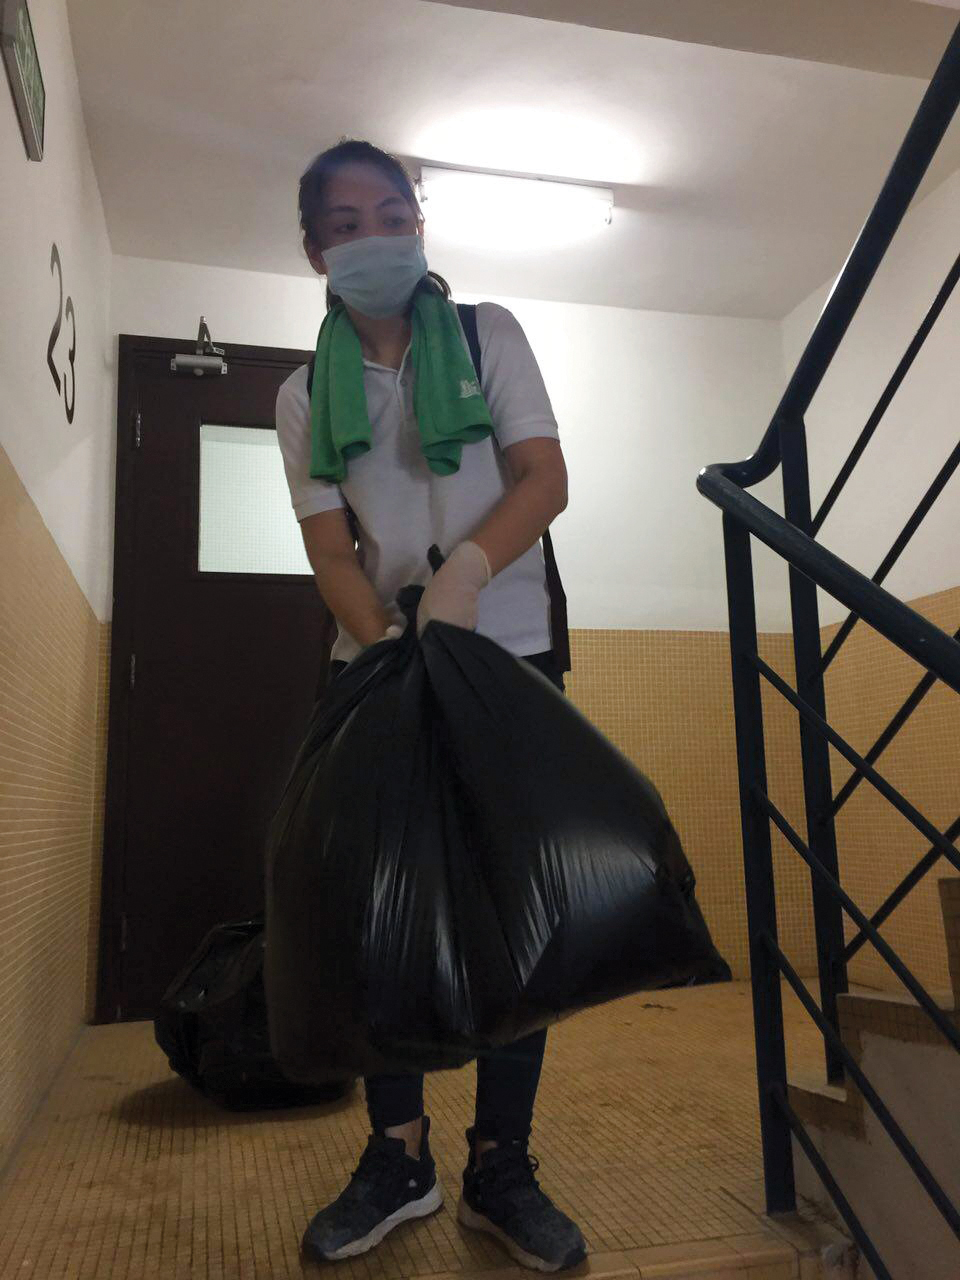 Emma Chan takes a trash bag down flights of stairs to help the elderly | Photo Courtesy of Emma Chan